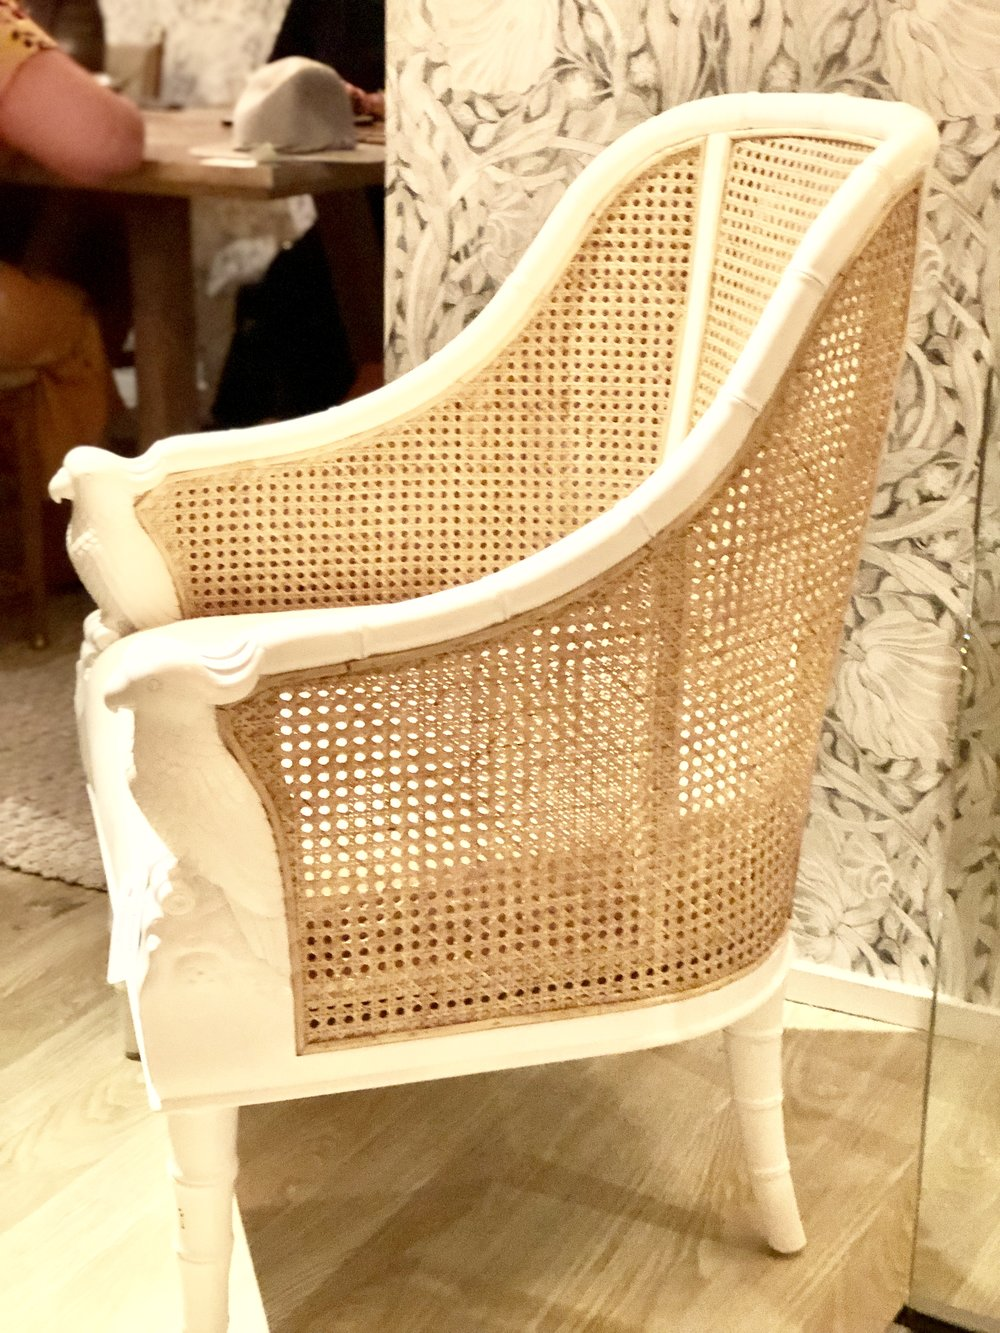 Here, the natural caning is paired with a glossy, white chair frame.